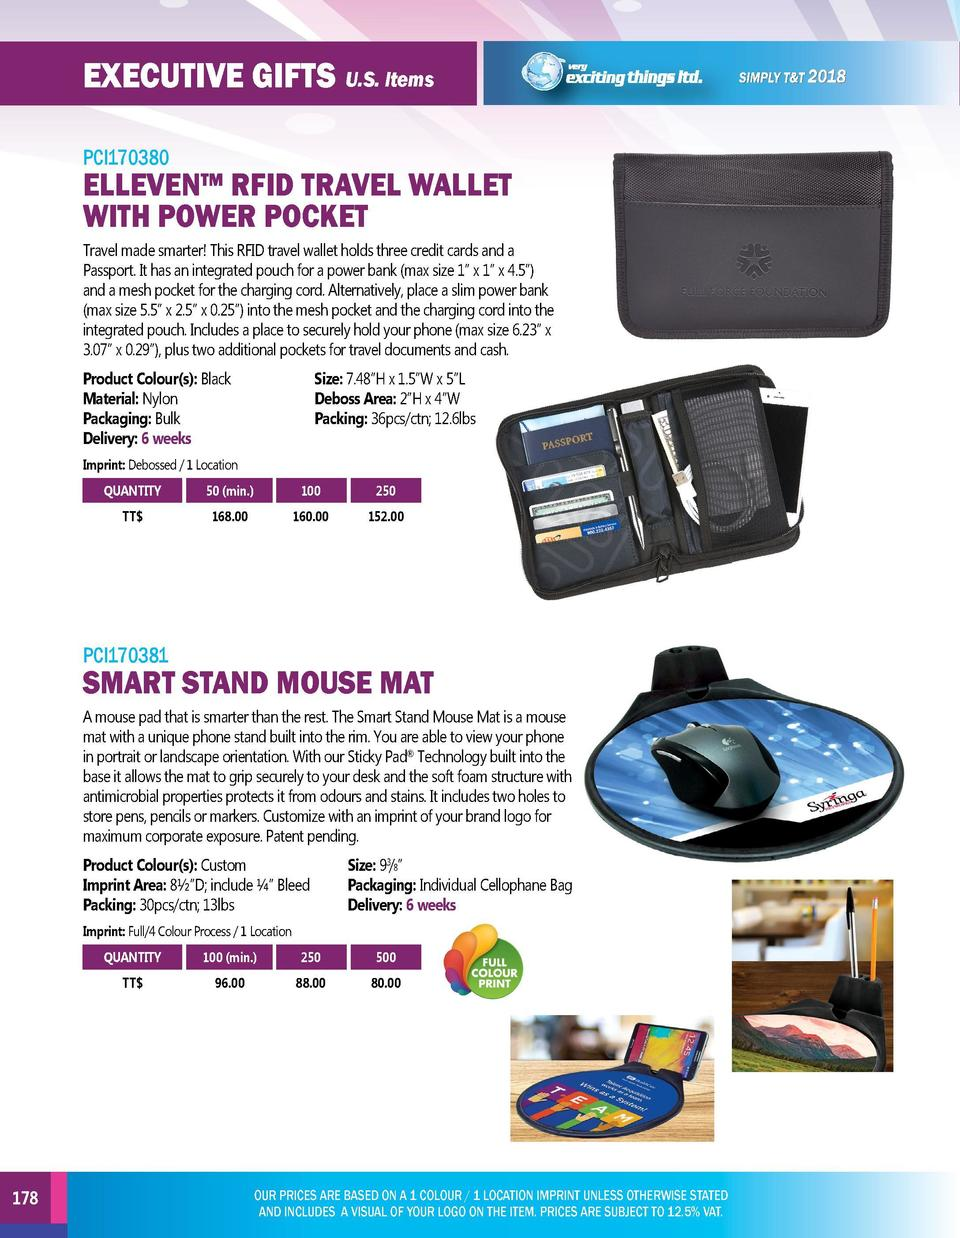 EXECUTIVE GIFTS U.S. Items  EXECUTIVE GIFTS U.S. Items  PCI170380  PCI170382  ELLEVEN    RFID TRAVEL WALLET WITH POWER POC...